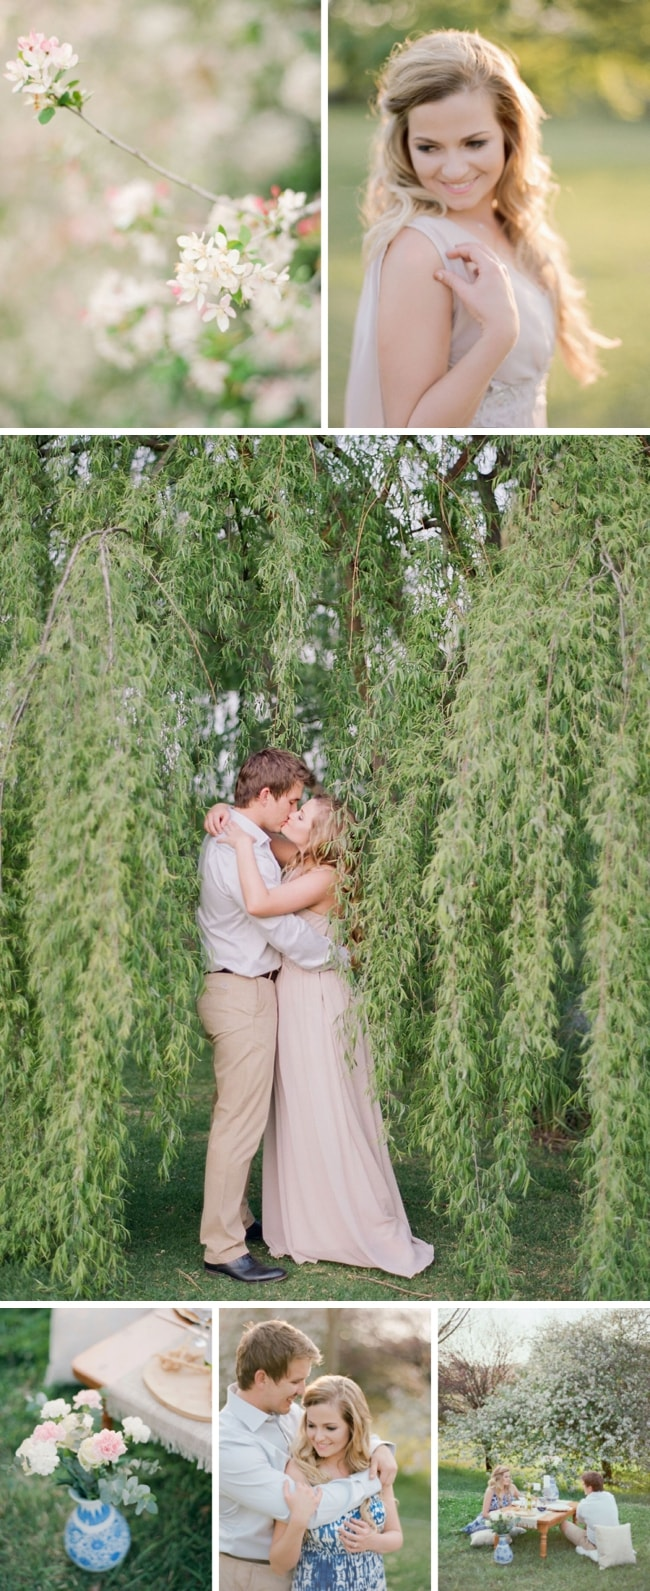 Dreamy Spring Film Engagement by Rensche Mari | SouthBound Bride